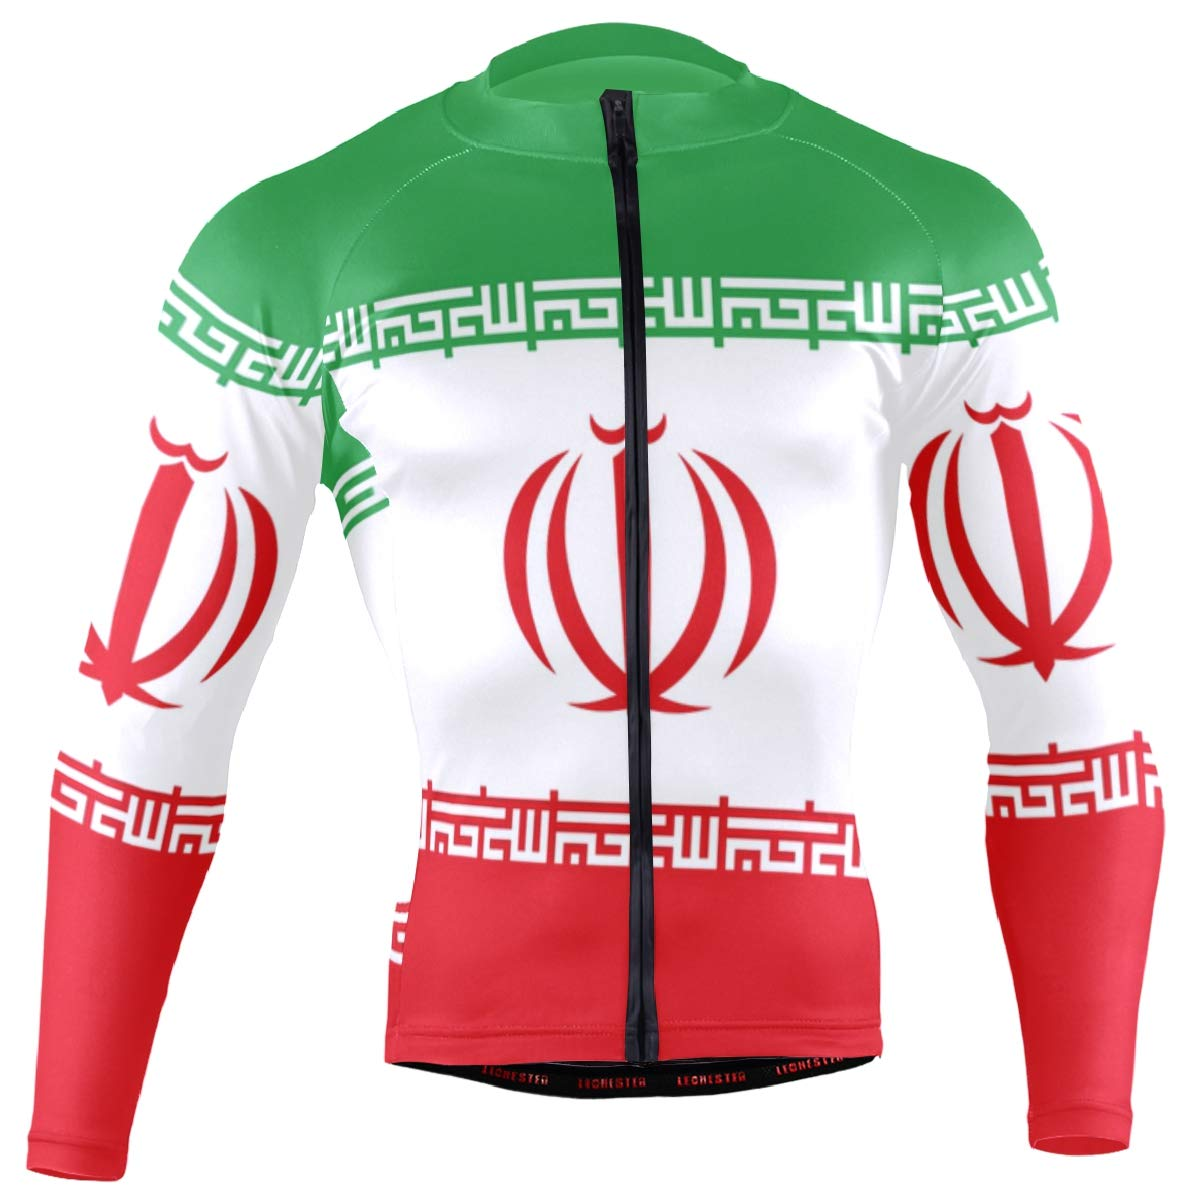 CHINEIN Men's Cycling Jersey Long Sleeve with 3 Rear Pockets Shirt Iran Flag by CHINEIN